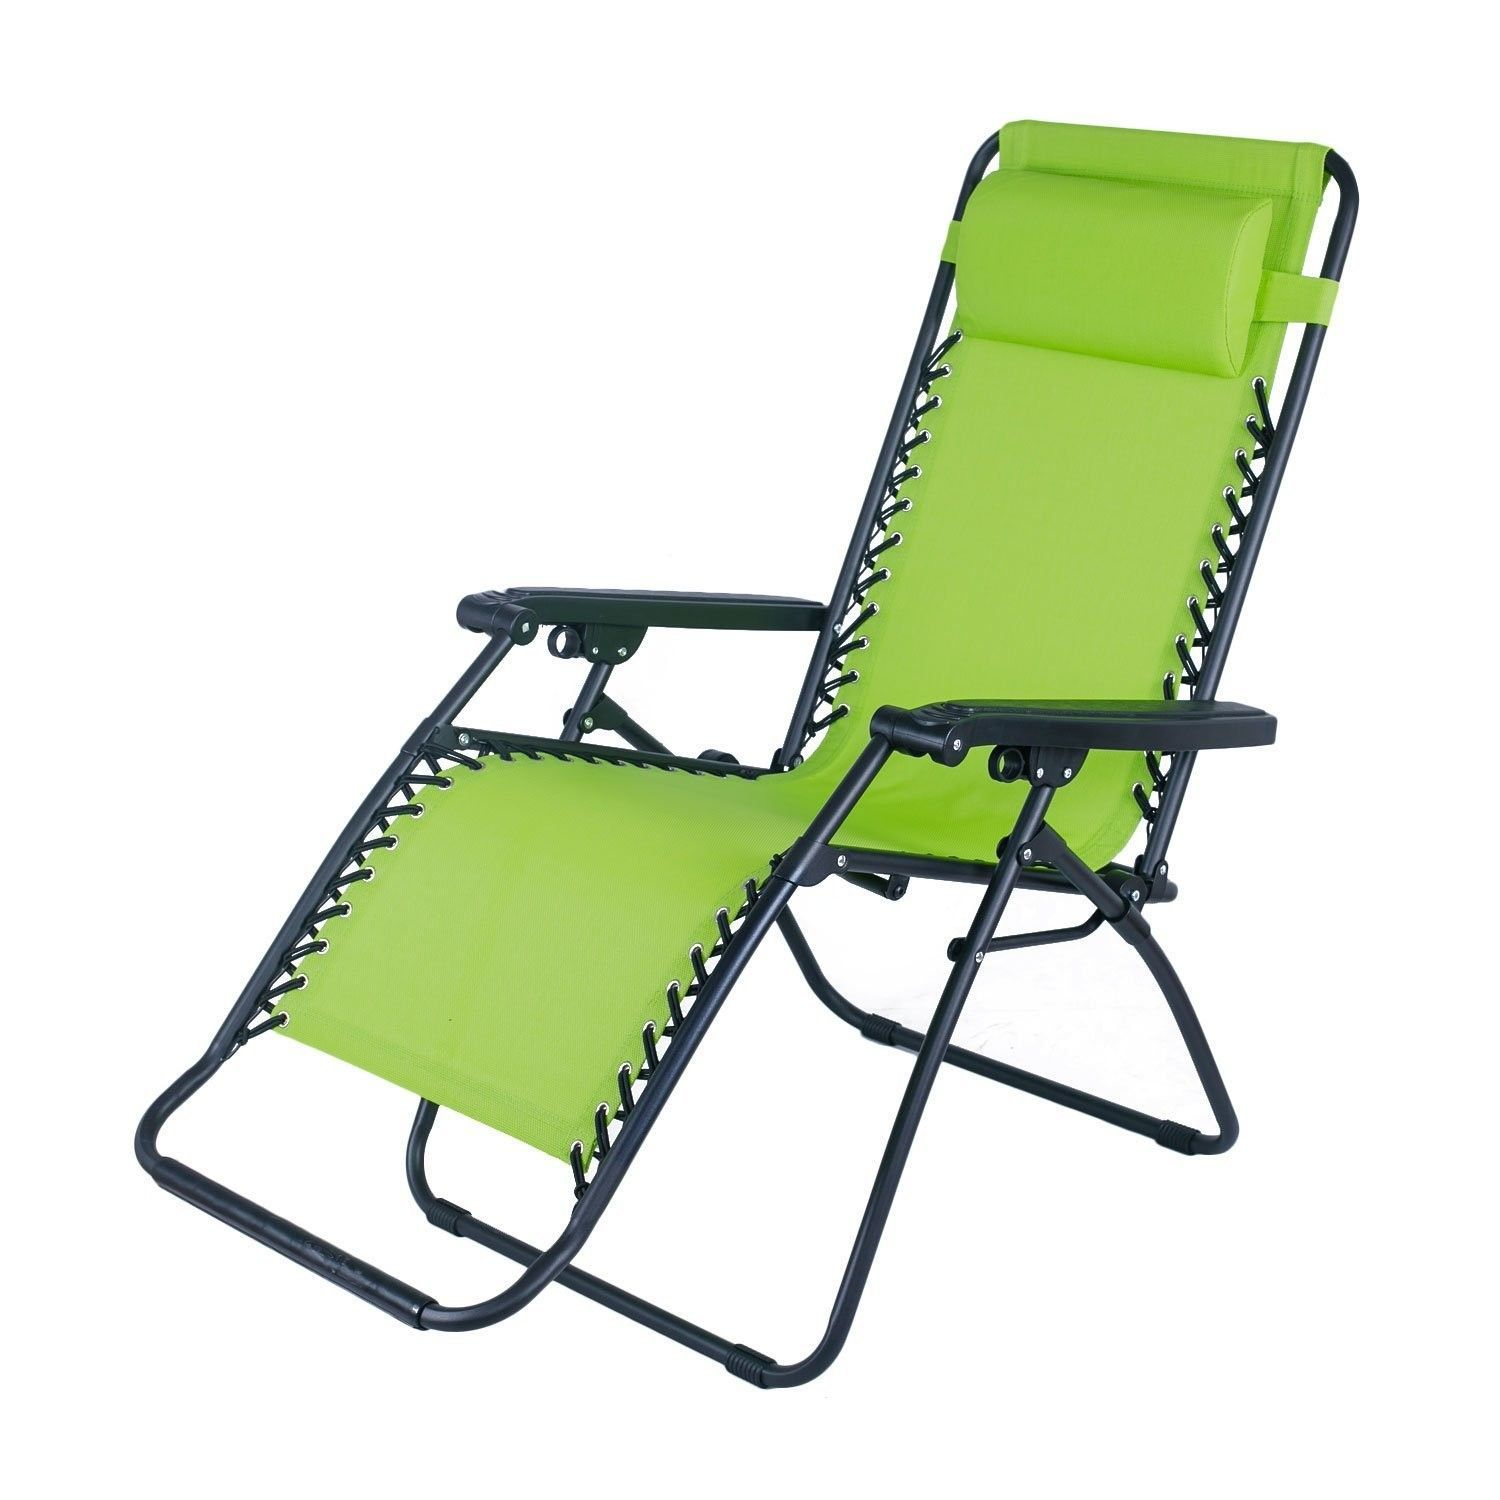 Outdoor Folding and Reclining Zero Gravity Chair Lounge